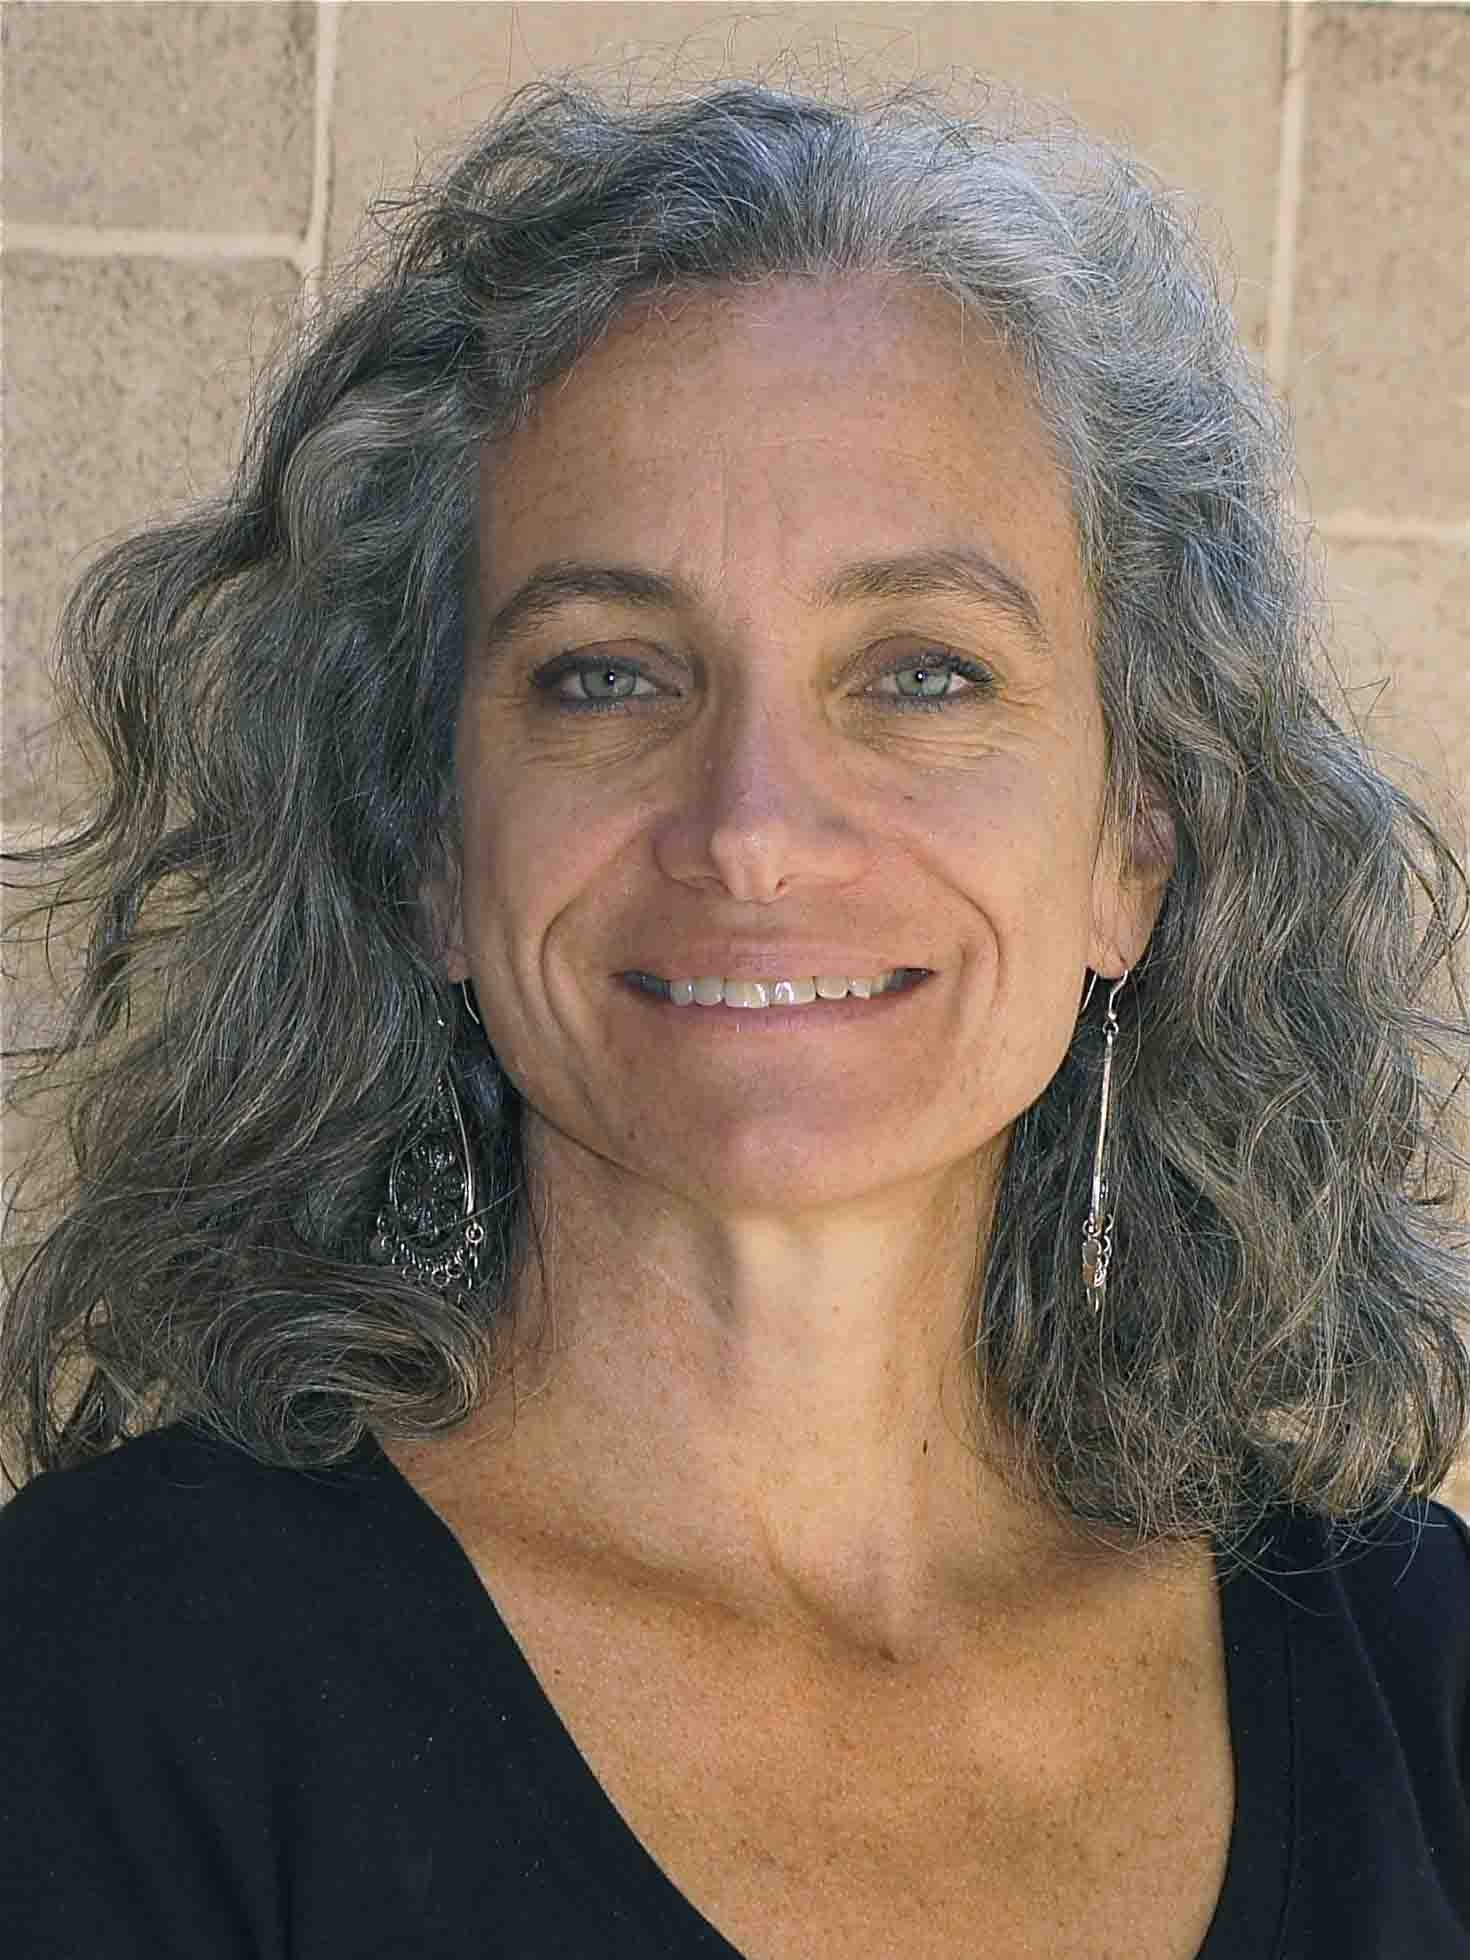 "Dr. Karen Bluth    Dr. Karen Bluth  is faculty at University of North Carolina at Chapel Hill, where her research focuses on the roles that self-compassion and mindfulness play in promoting well-being in youth. She is co-creator of the curriculum  Making Friends with Yourself: A Mindful Self-Compassion Program for Teen s, and author of the forthcoming book ""The Self-Compassion Workbook for Teens: Mindfulness and Compassion Skills to Overcome Self-Criticism and Embrace Who You Are"" (New Harbinger Publishers). As a mindfulness practitioner for almost 40 years, a mindfulness teacher, and a lifelong educator with 18 years of classroom experience, Dr. Bluth frequently gives talks, conducts workshops, and teaches classes in self-compassion and mindfulness in educational settings and in the community."